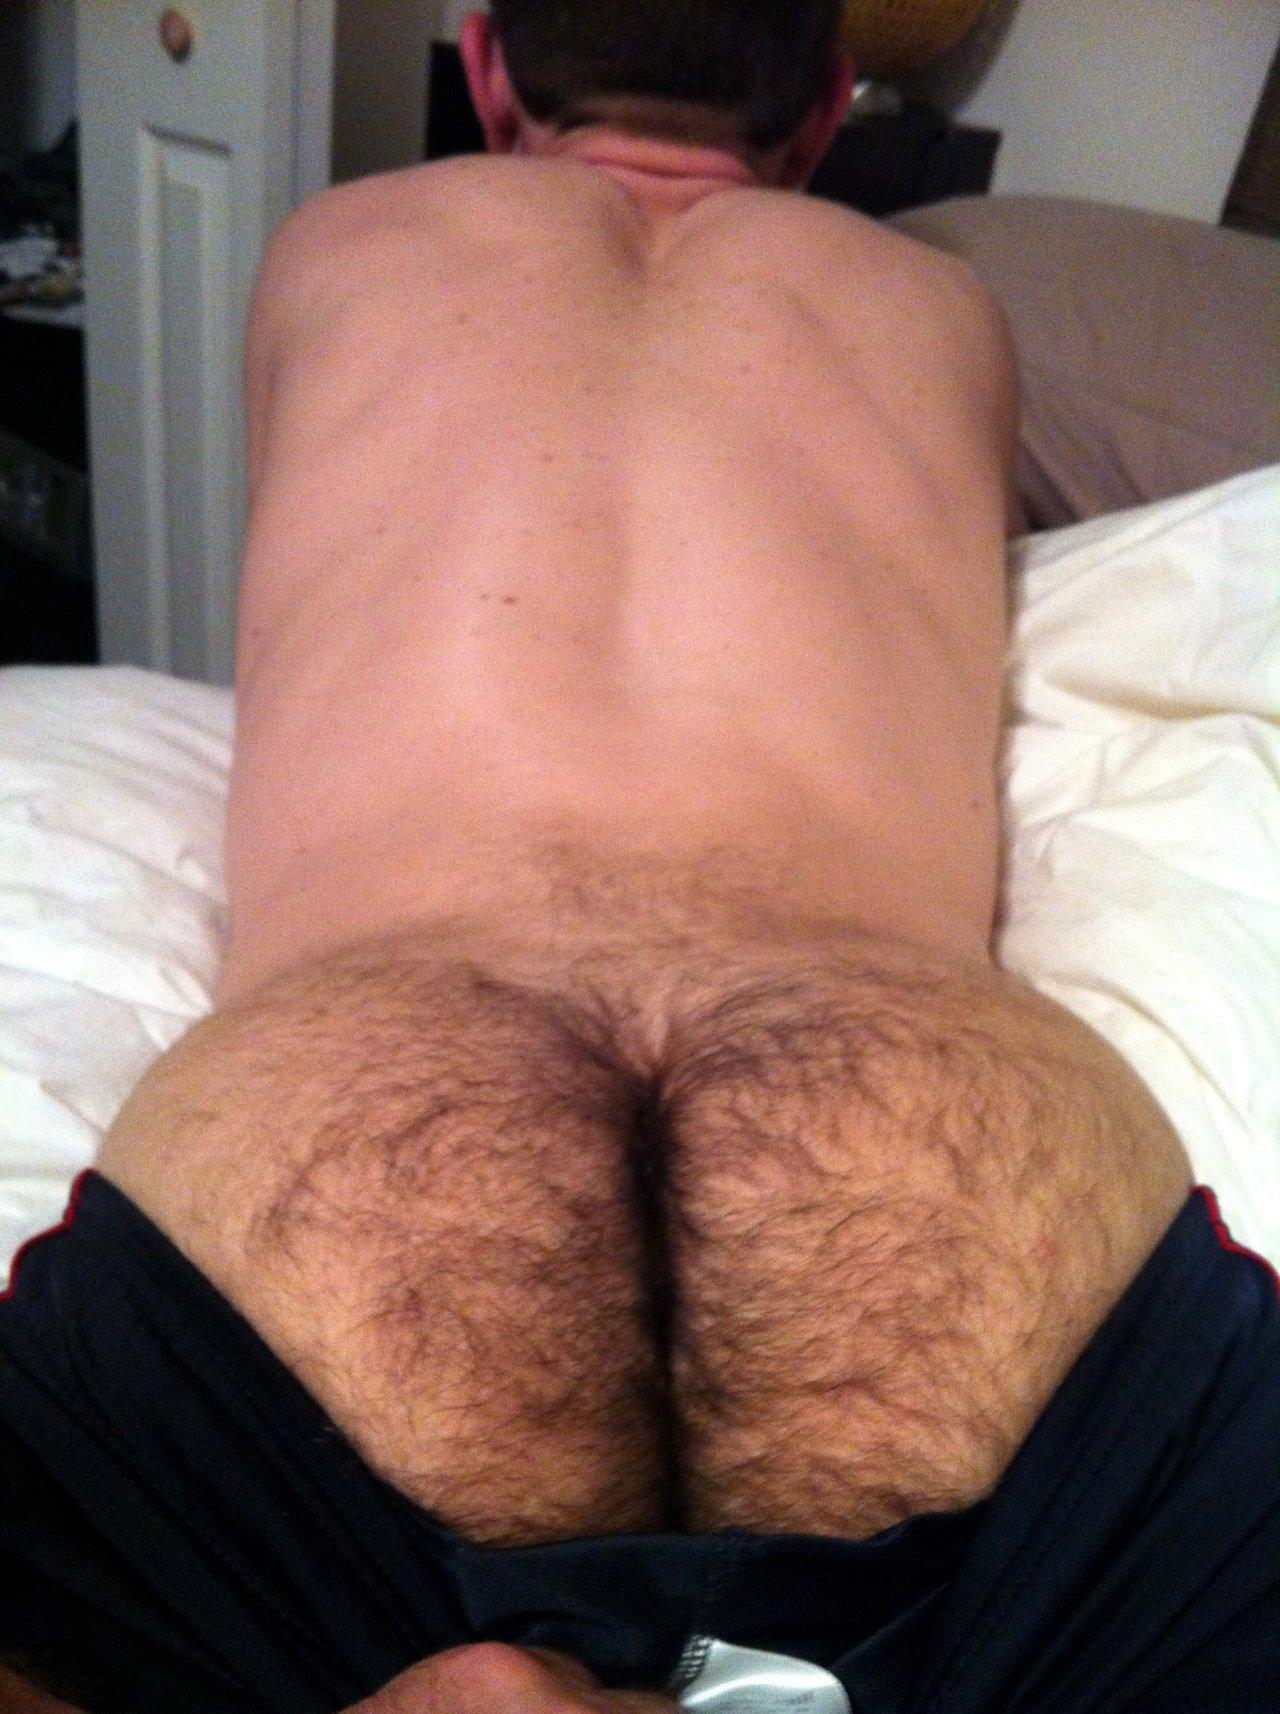 Hot hairy asshole